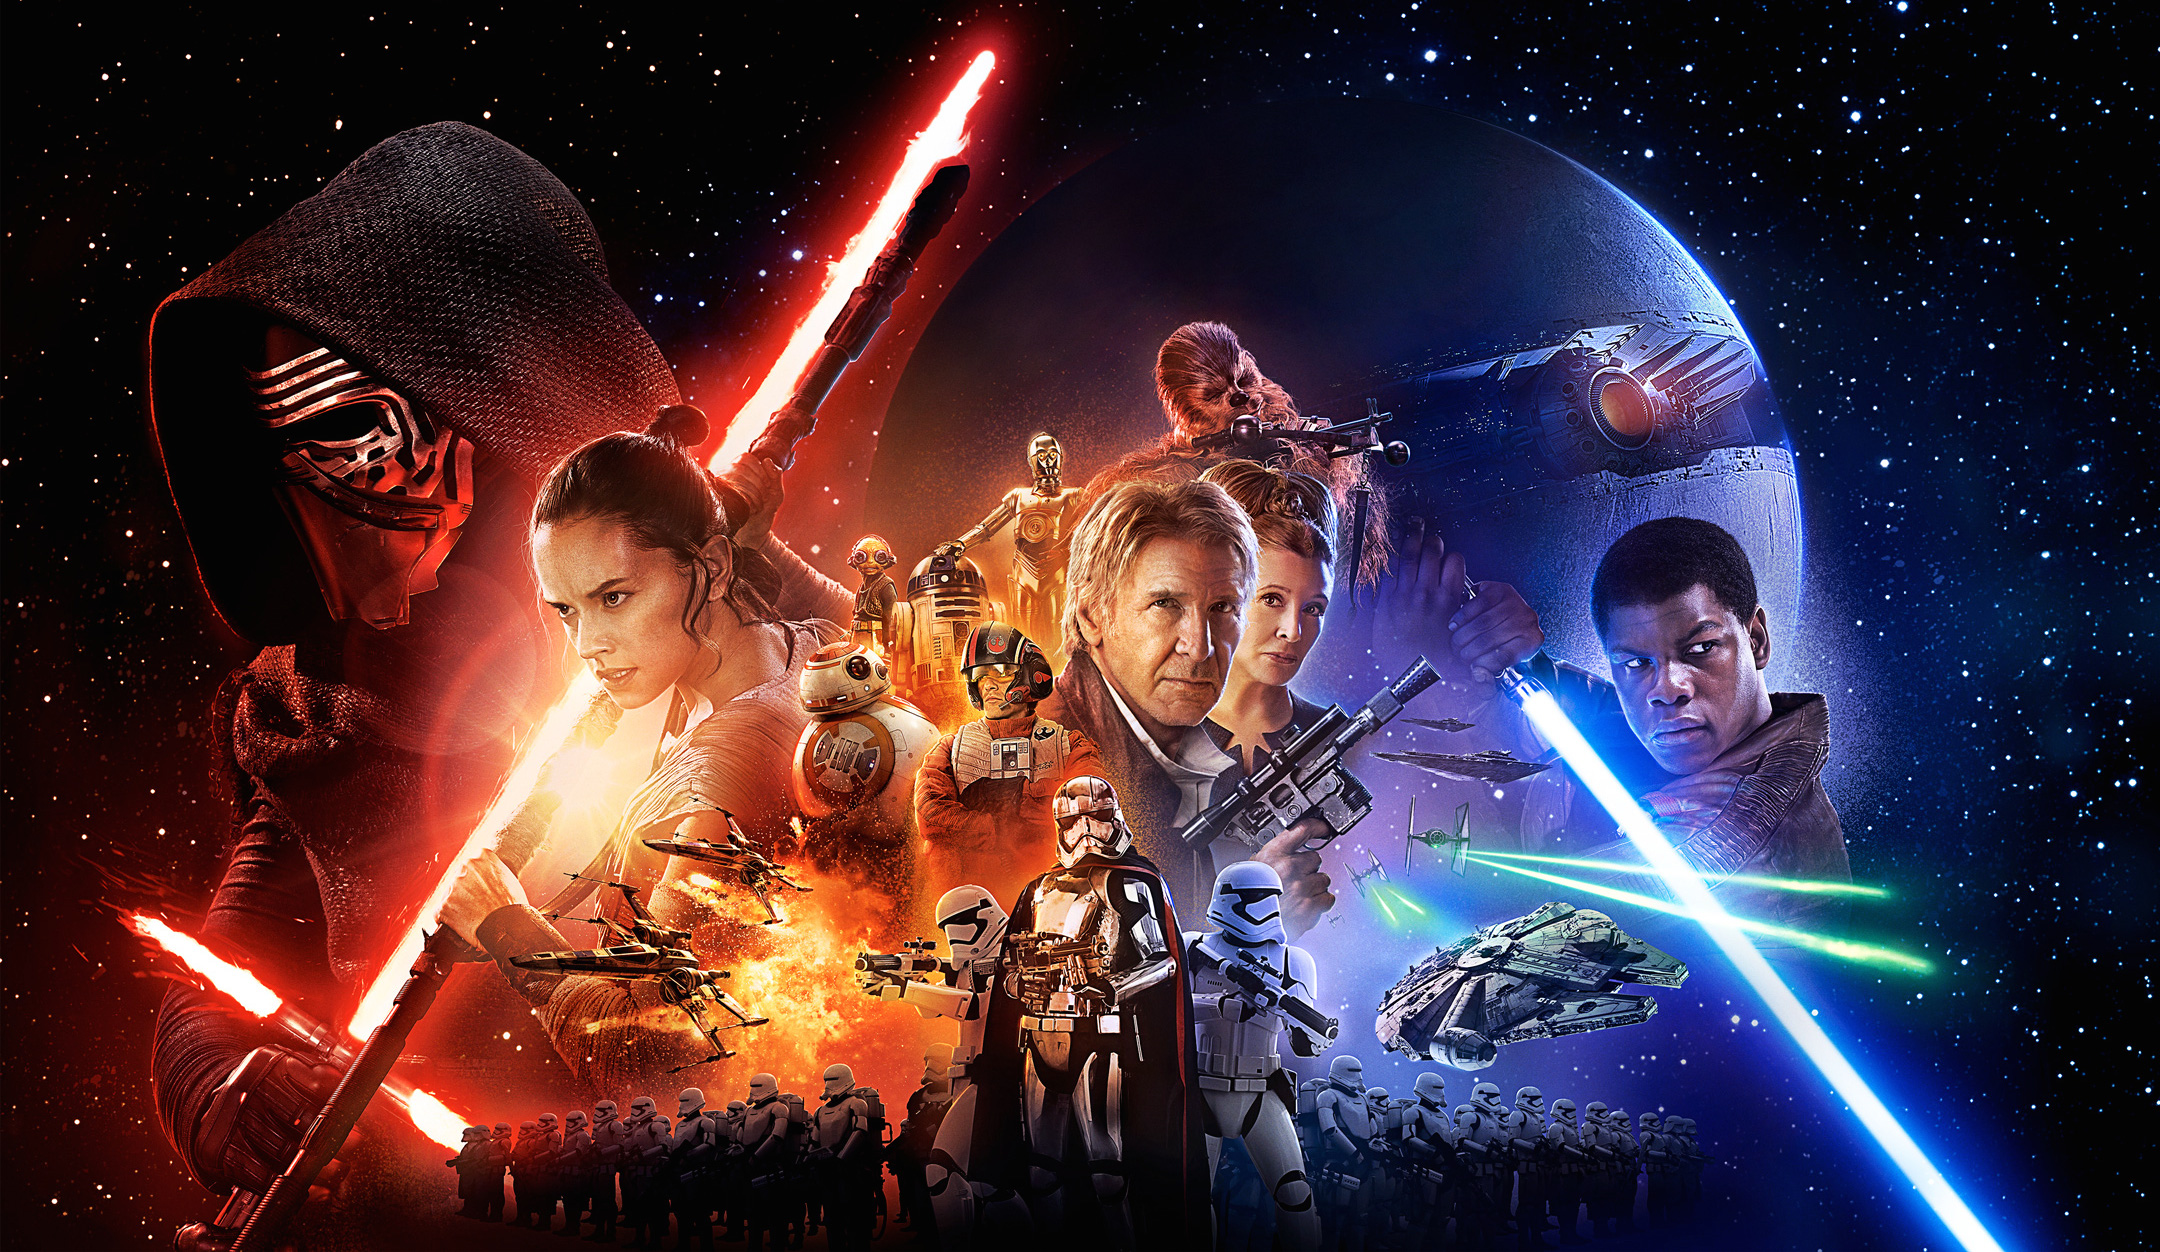 'Star Wars: The Force Awakens' at Free Outdoor Movies in Stanley Park